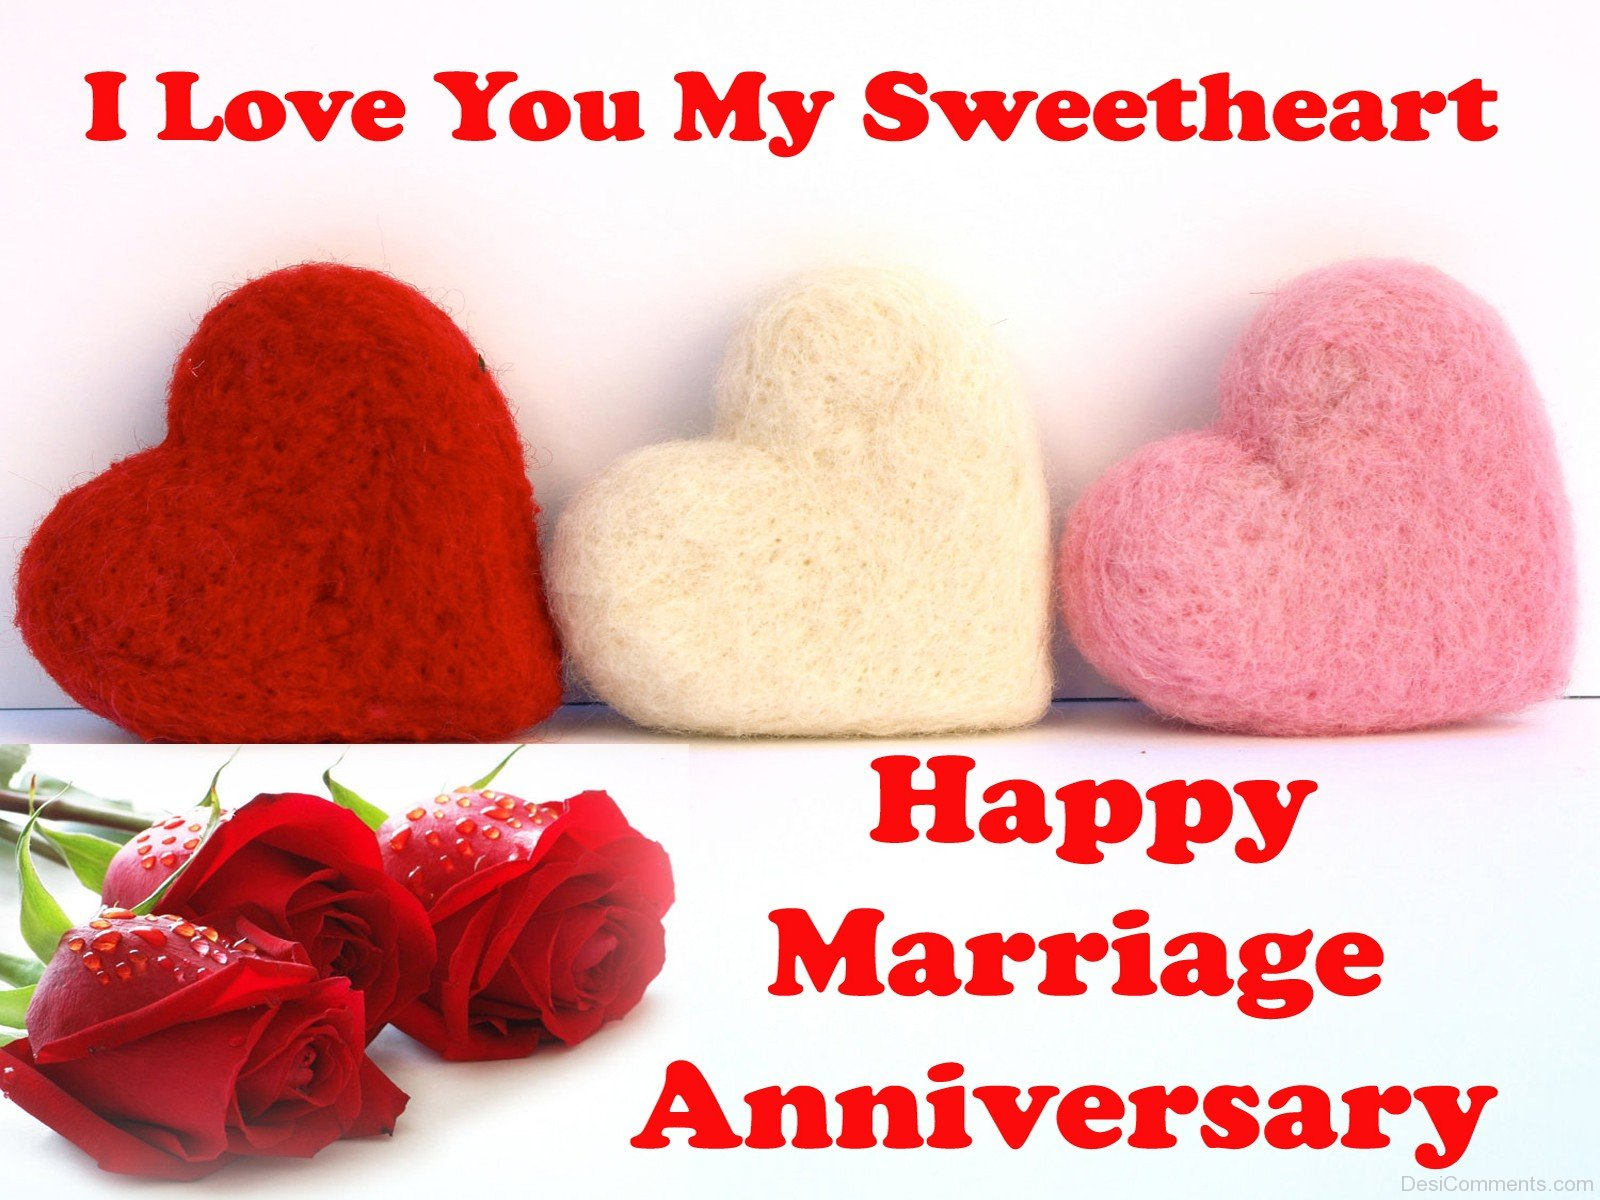 I Love You My Sweetheart Happy Marriage Anniversary Desicomments Com